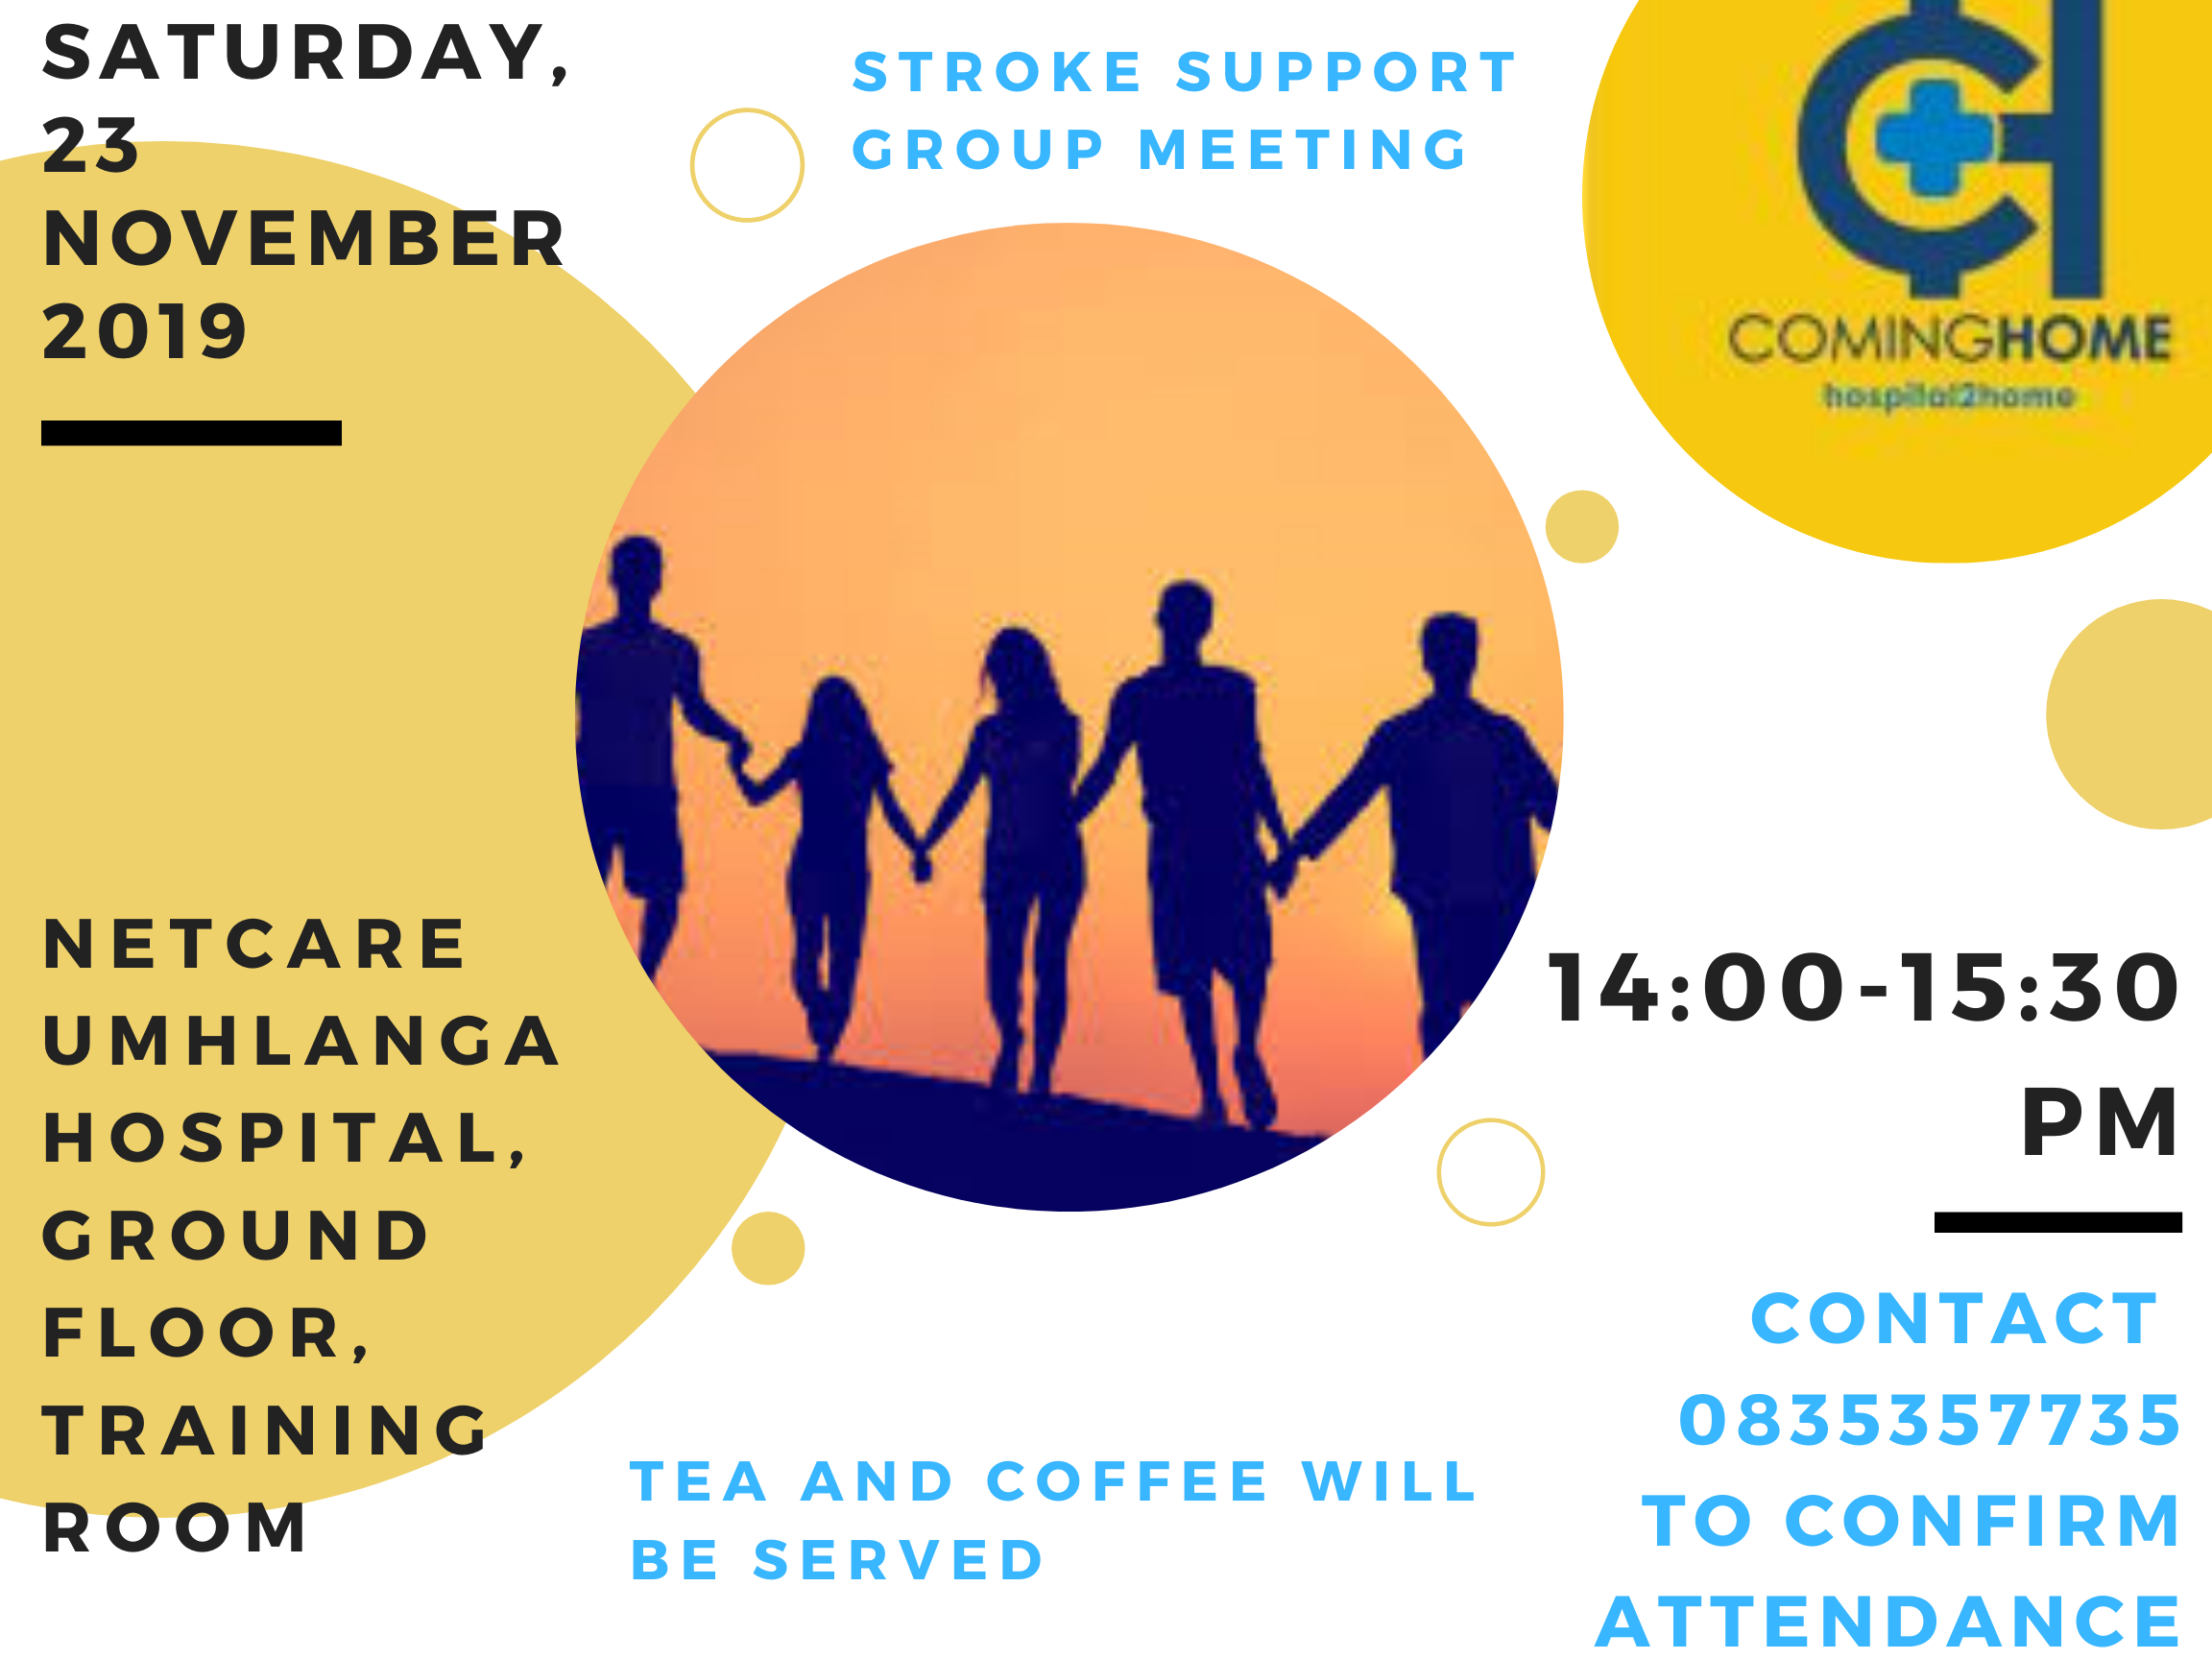 To provide support and encouragement to all stroke survivors